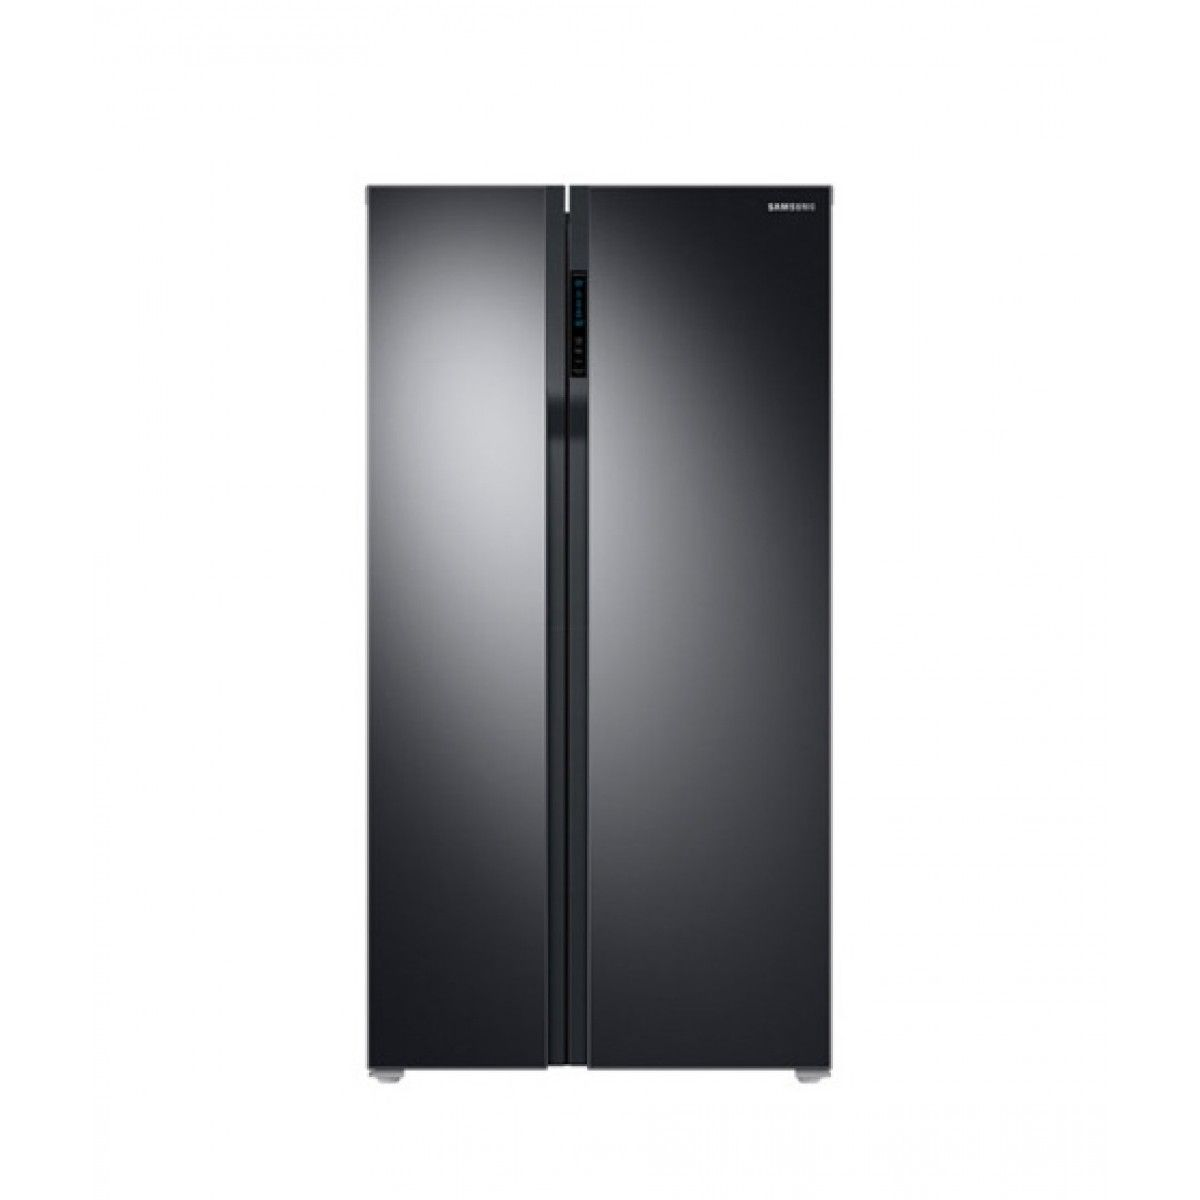 Samsung (RS55K50A02C) Side-By-Side 20 cu ft  Refrigerator